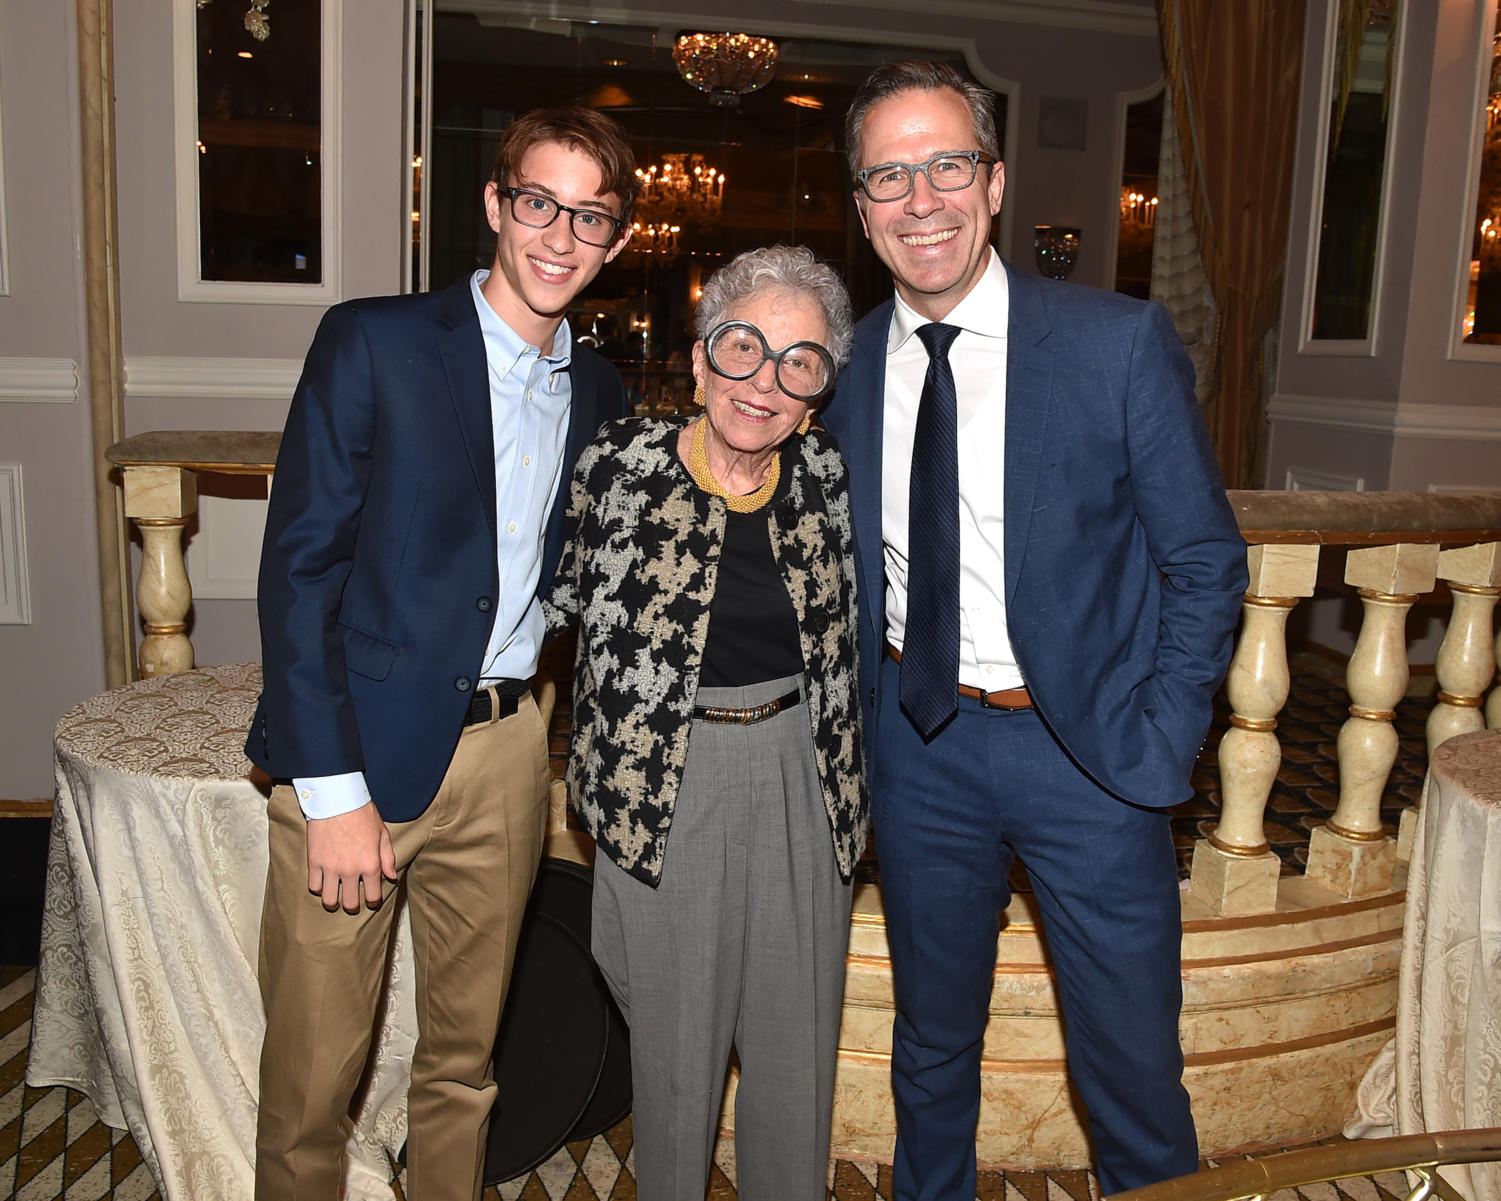 Guest judge Sylvia Weinstock, center, poses with Alexander Nichols and Dr. Brendon Stiles at the Lung Cancer Research Foundation's 13th annual awareness luncheon.